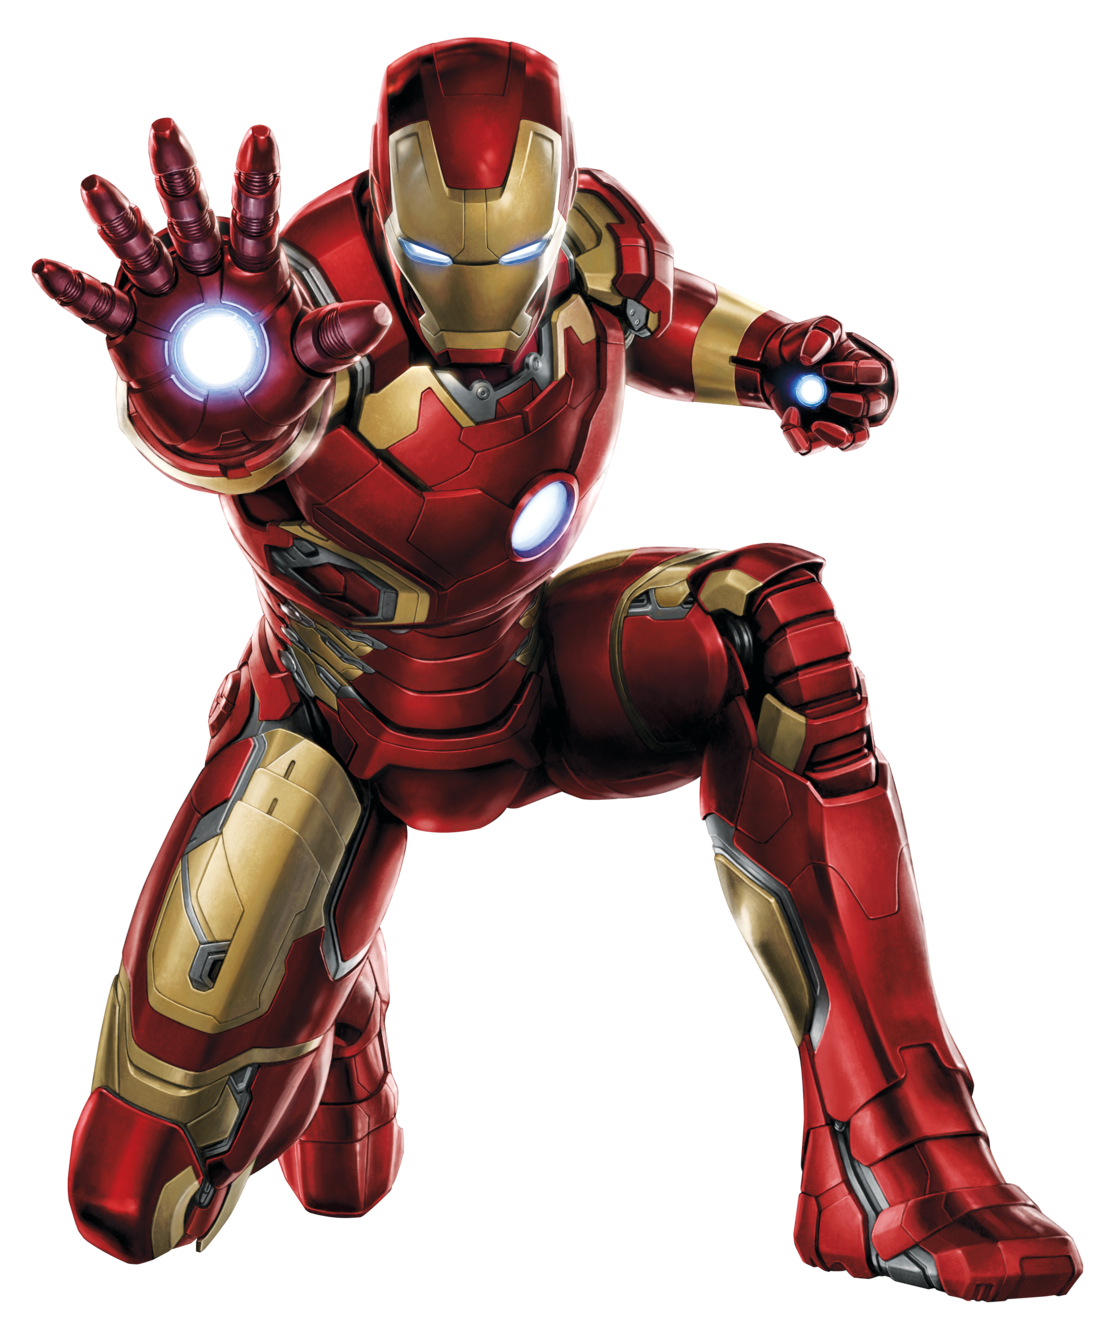 Marvel png images. Image aou iron man